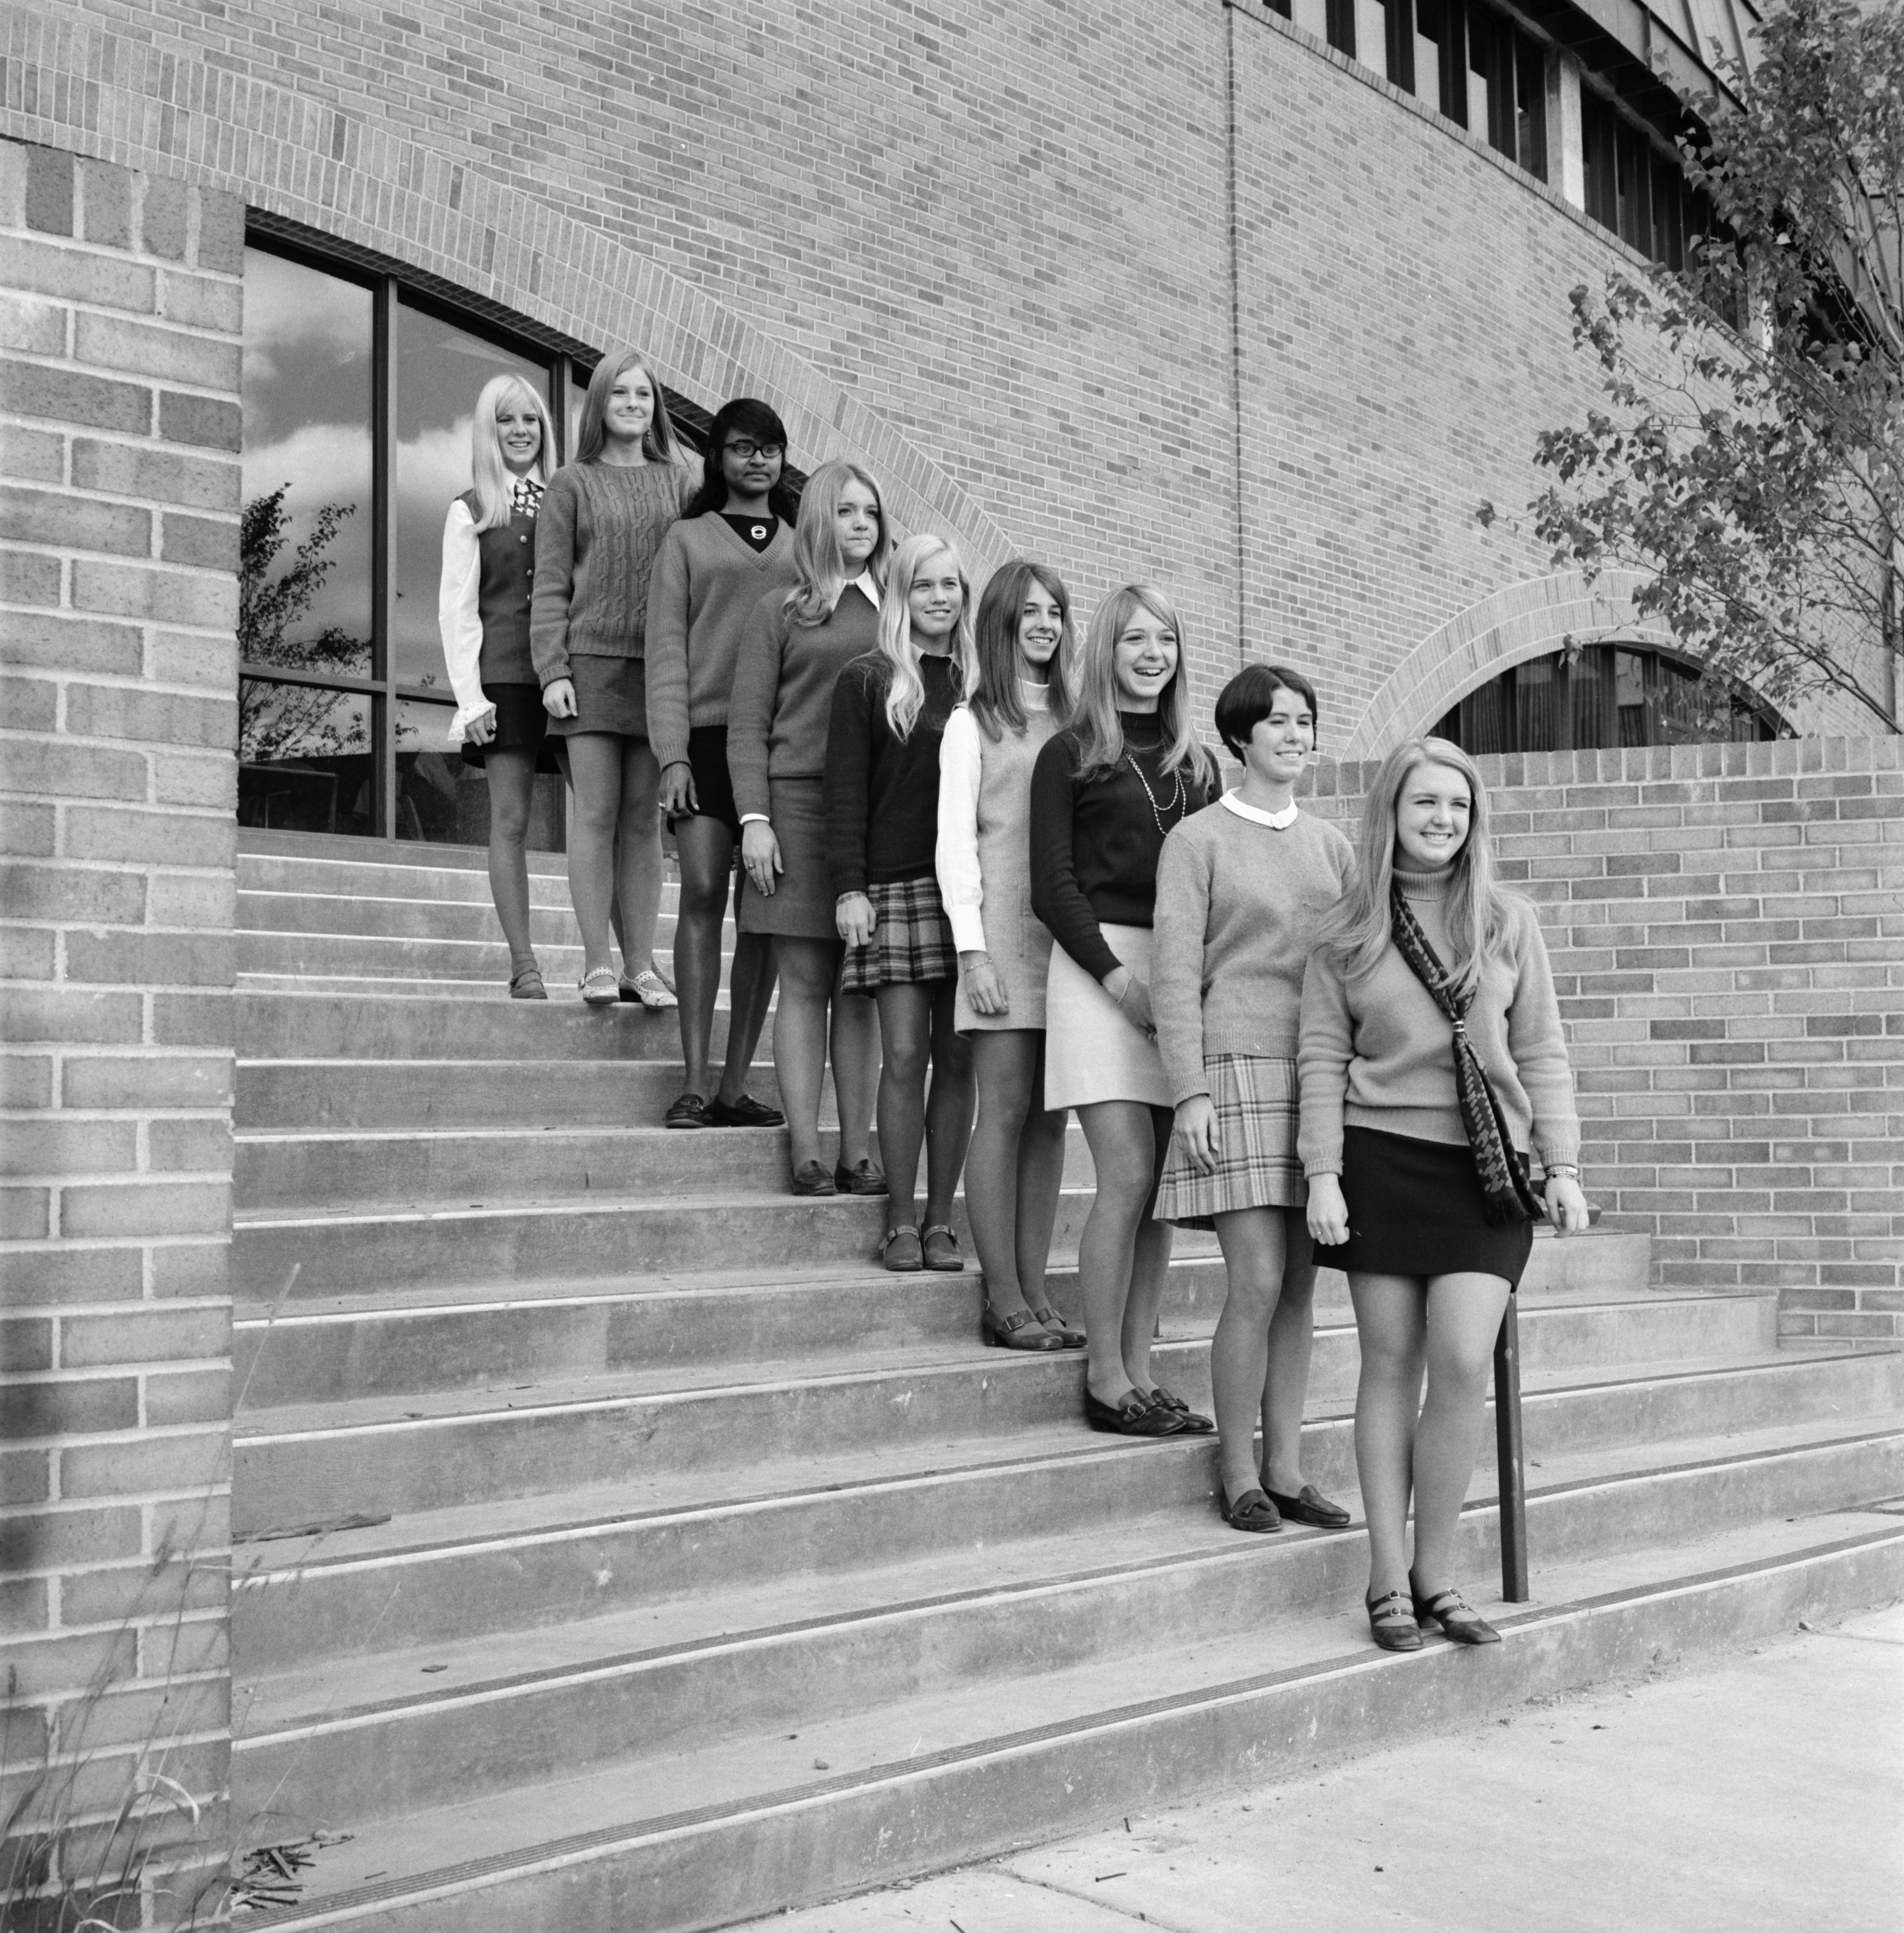 Huron High's Homecoming Queen Candidates, October 1969 image